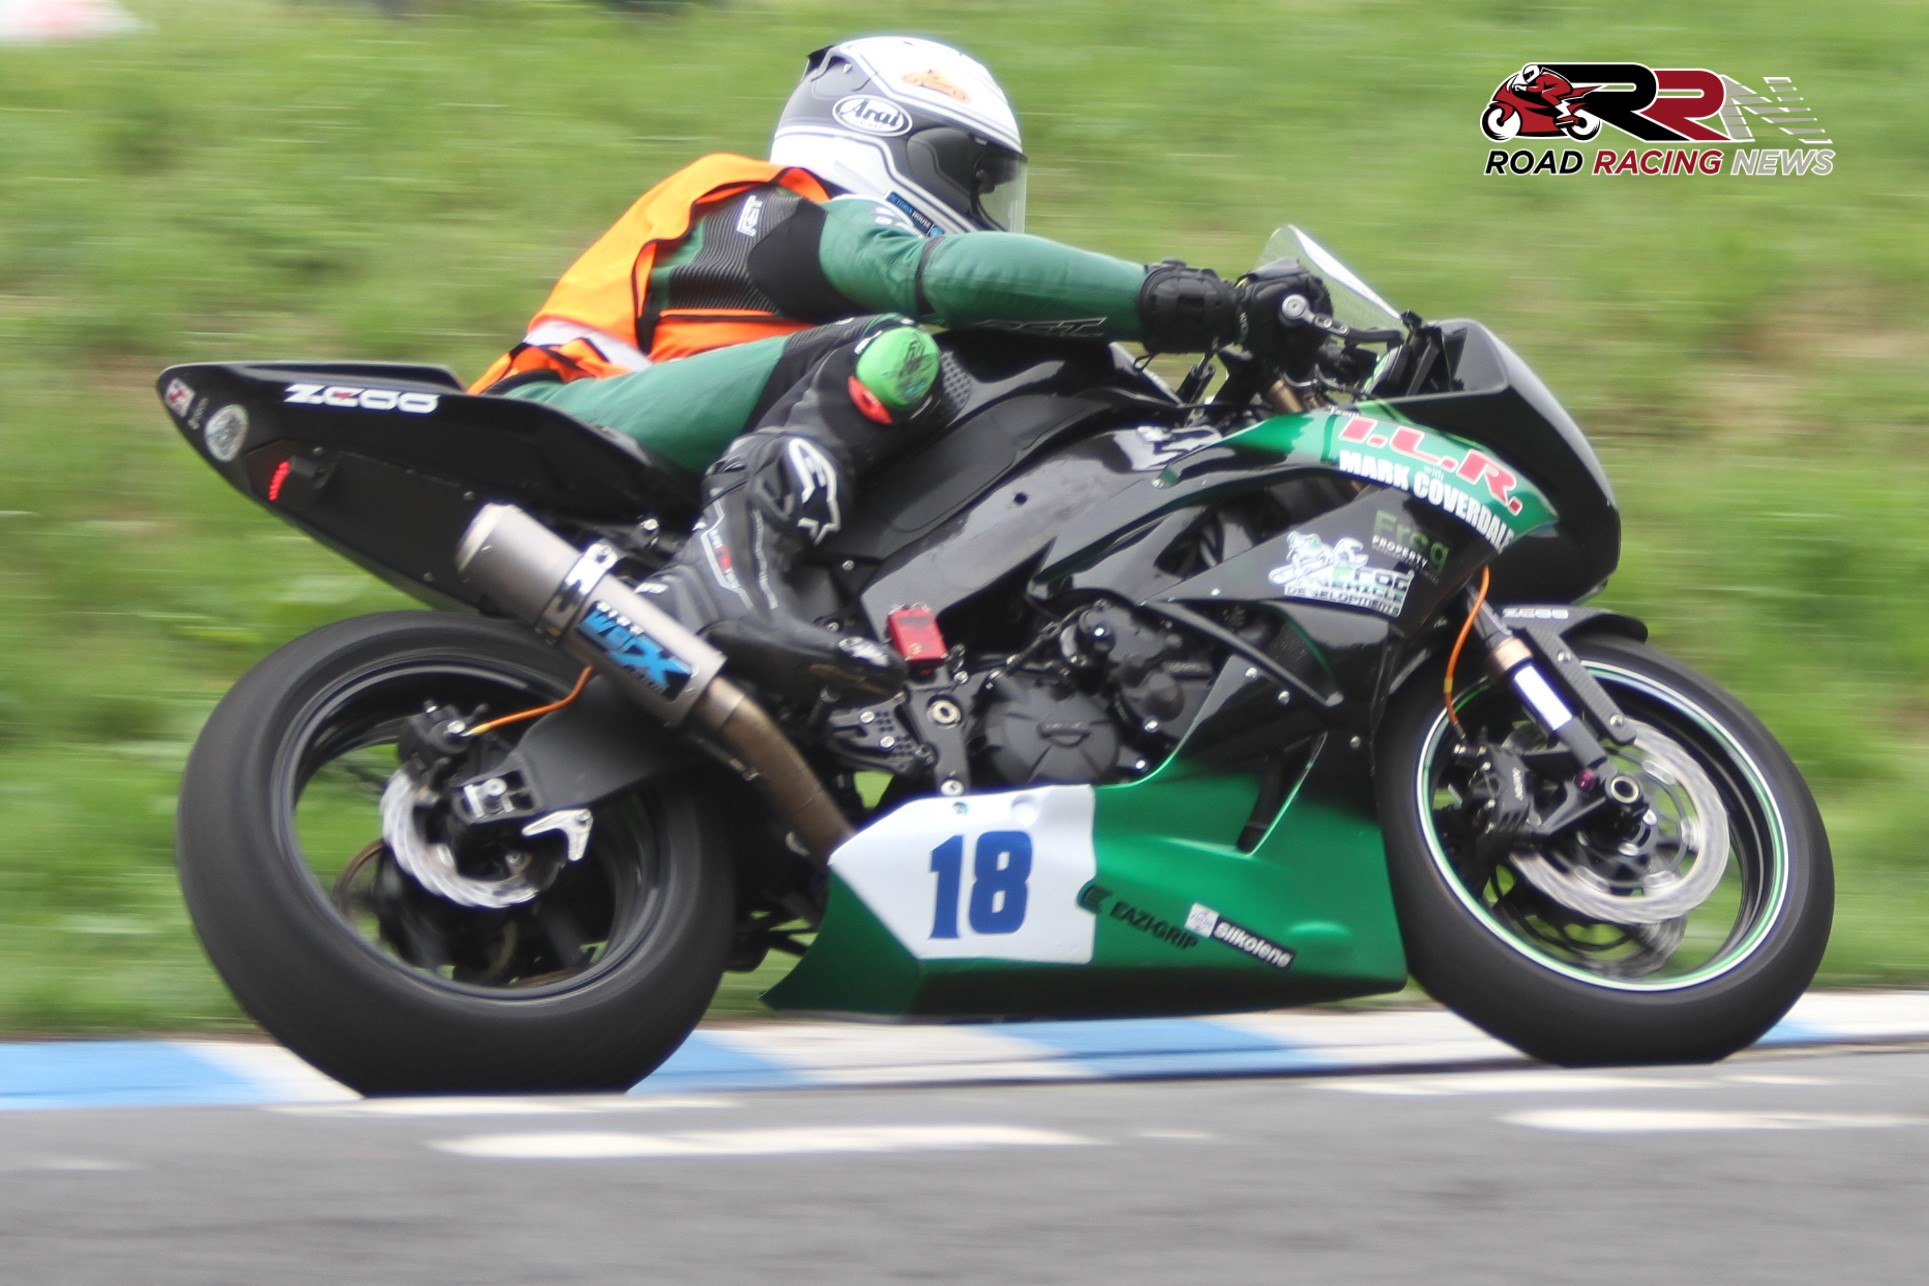 Barry Sheene Classic – Qualifying Results Compilation